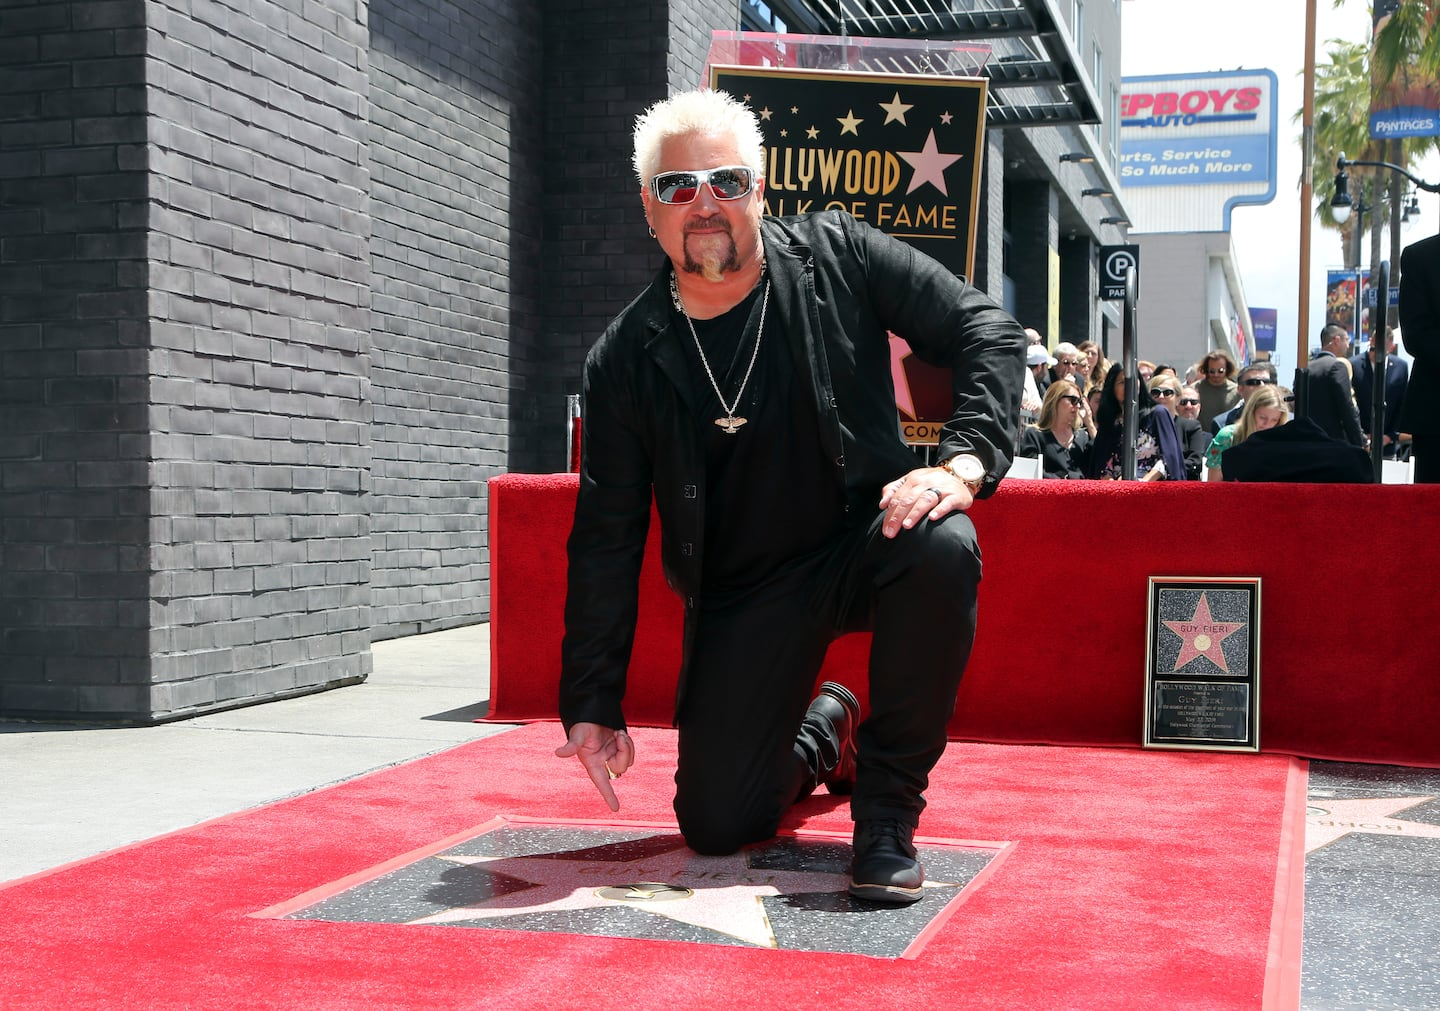 Guy Fieri appears at a ceremony honoring him with a star on the Hollywood Walk of Fame in 2019.